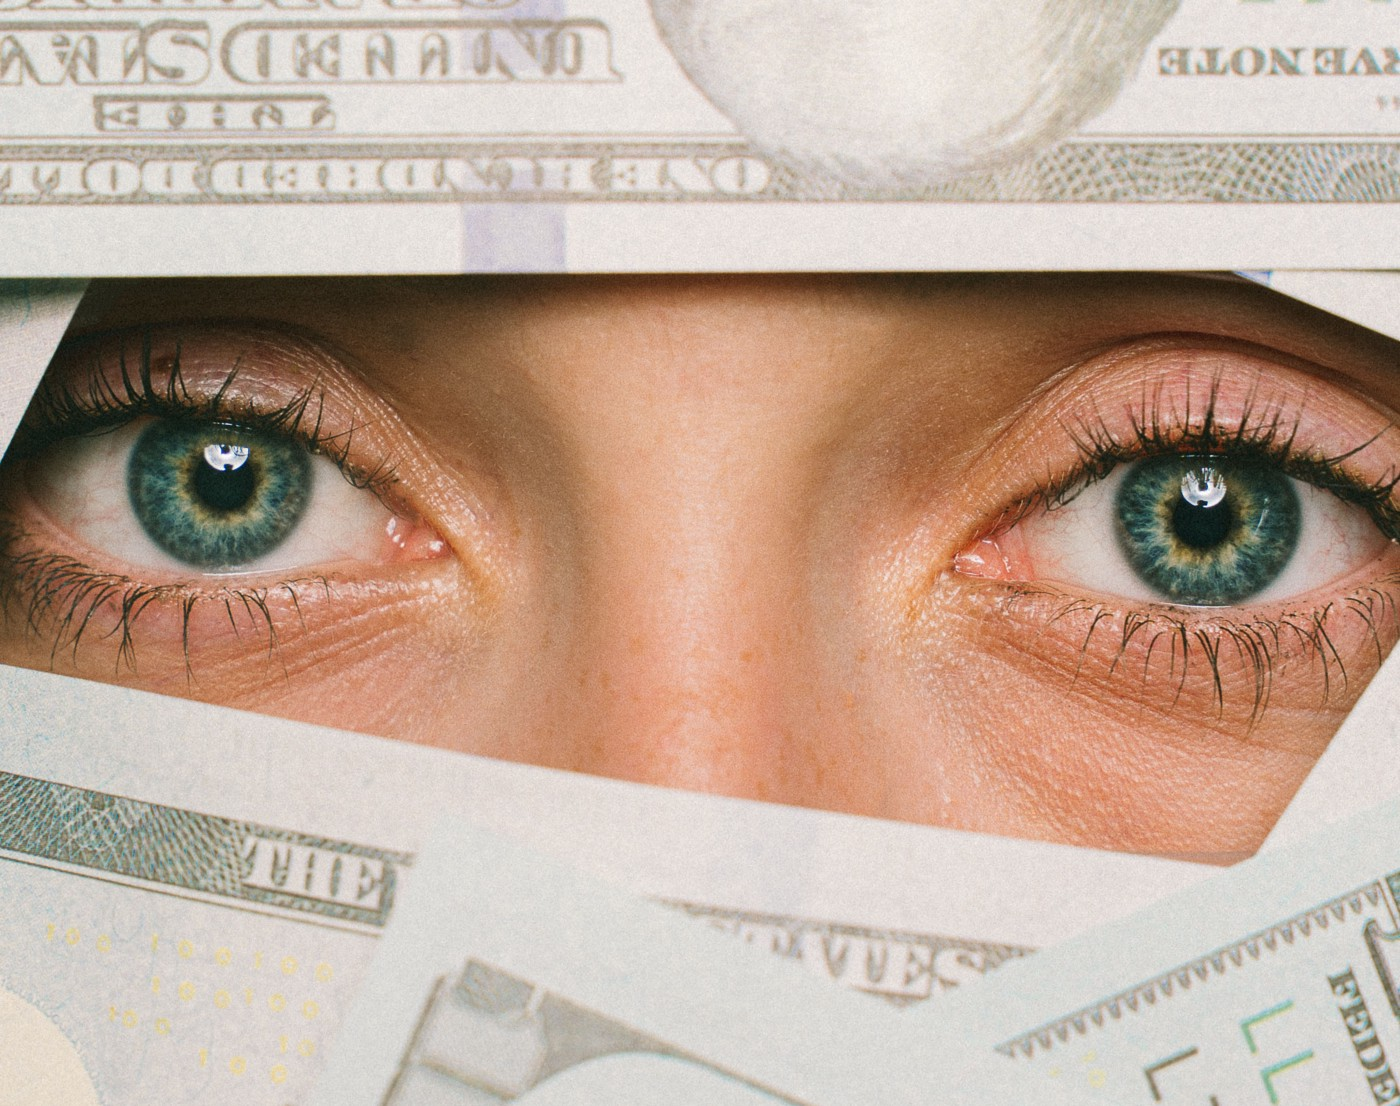 a woman too shy to monetize the community hiding behind dollar bills